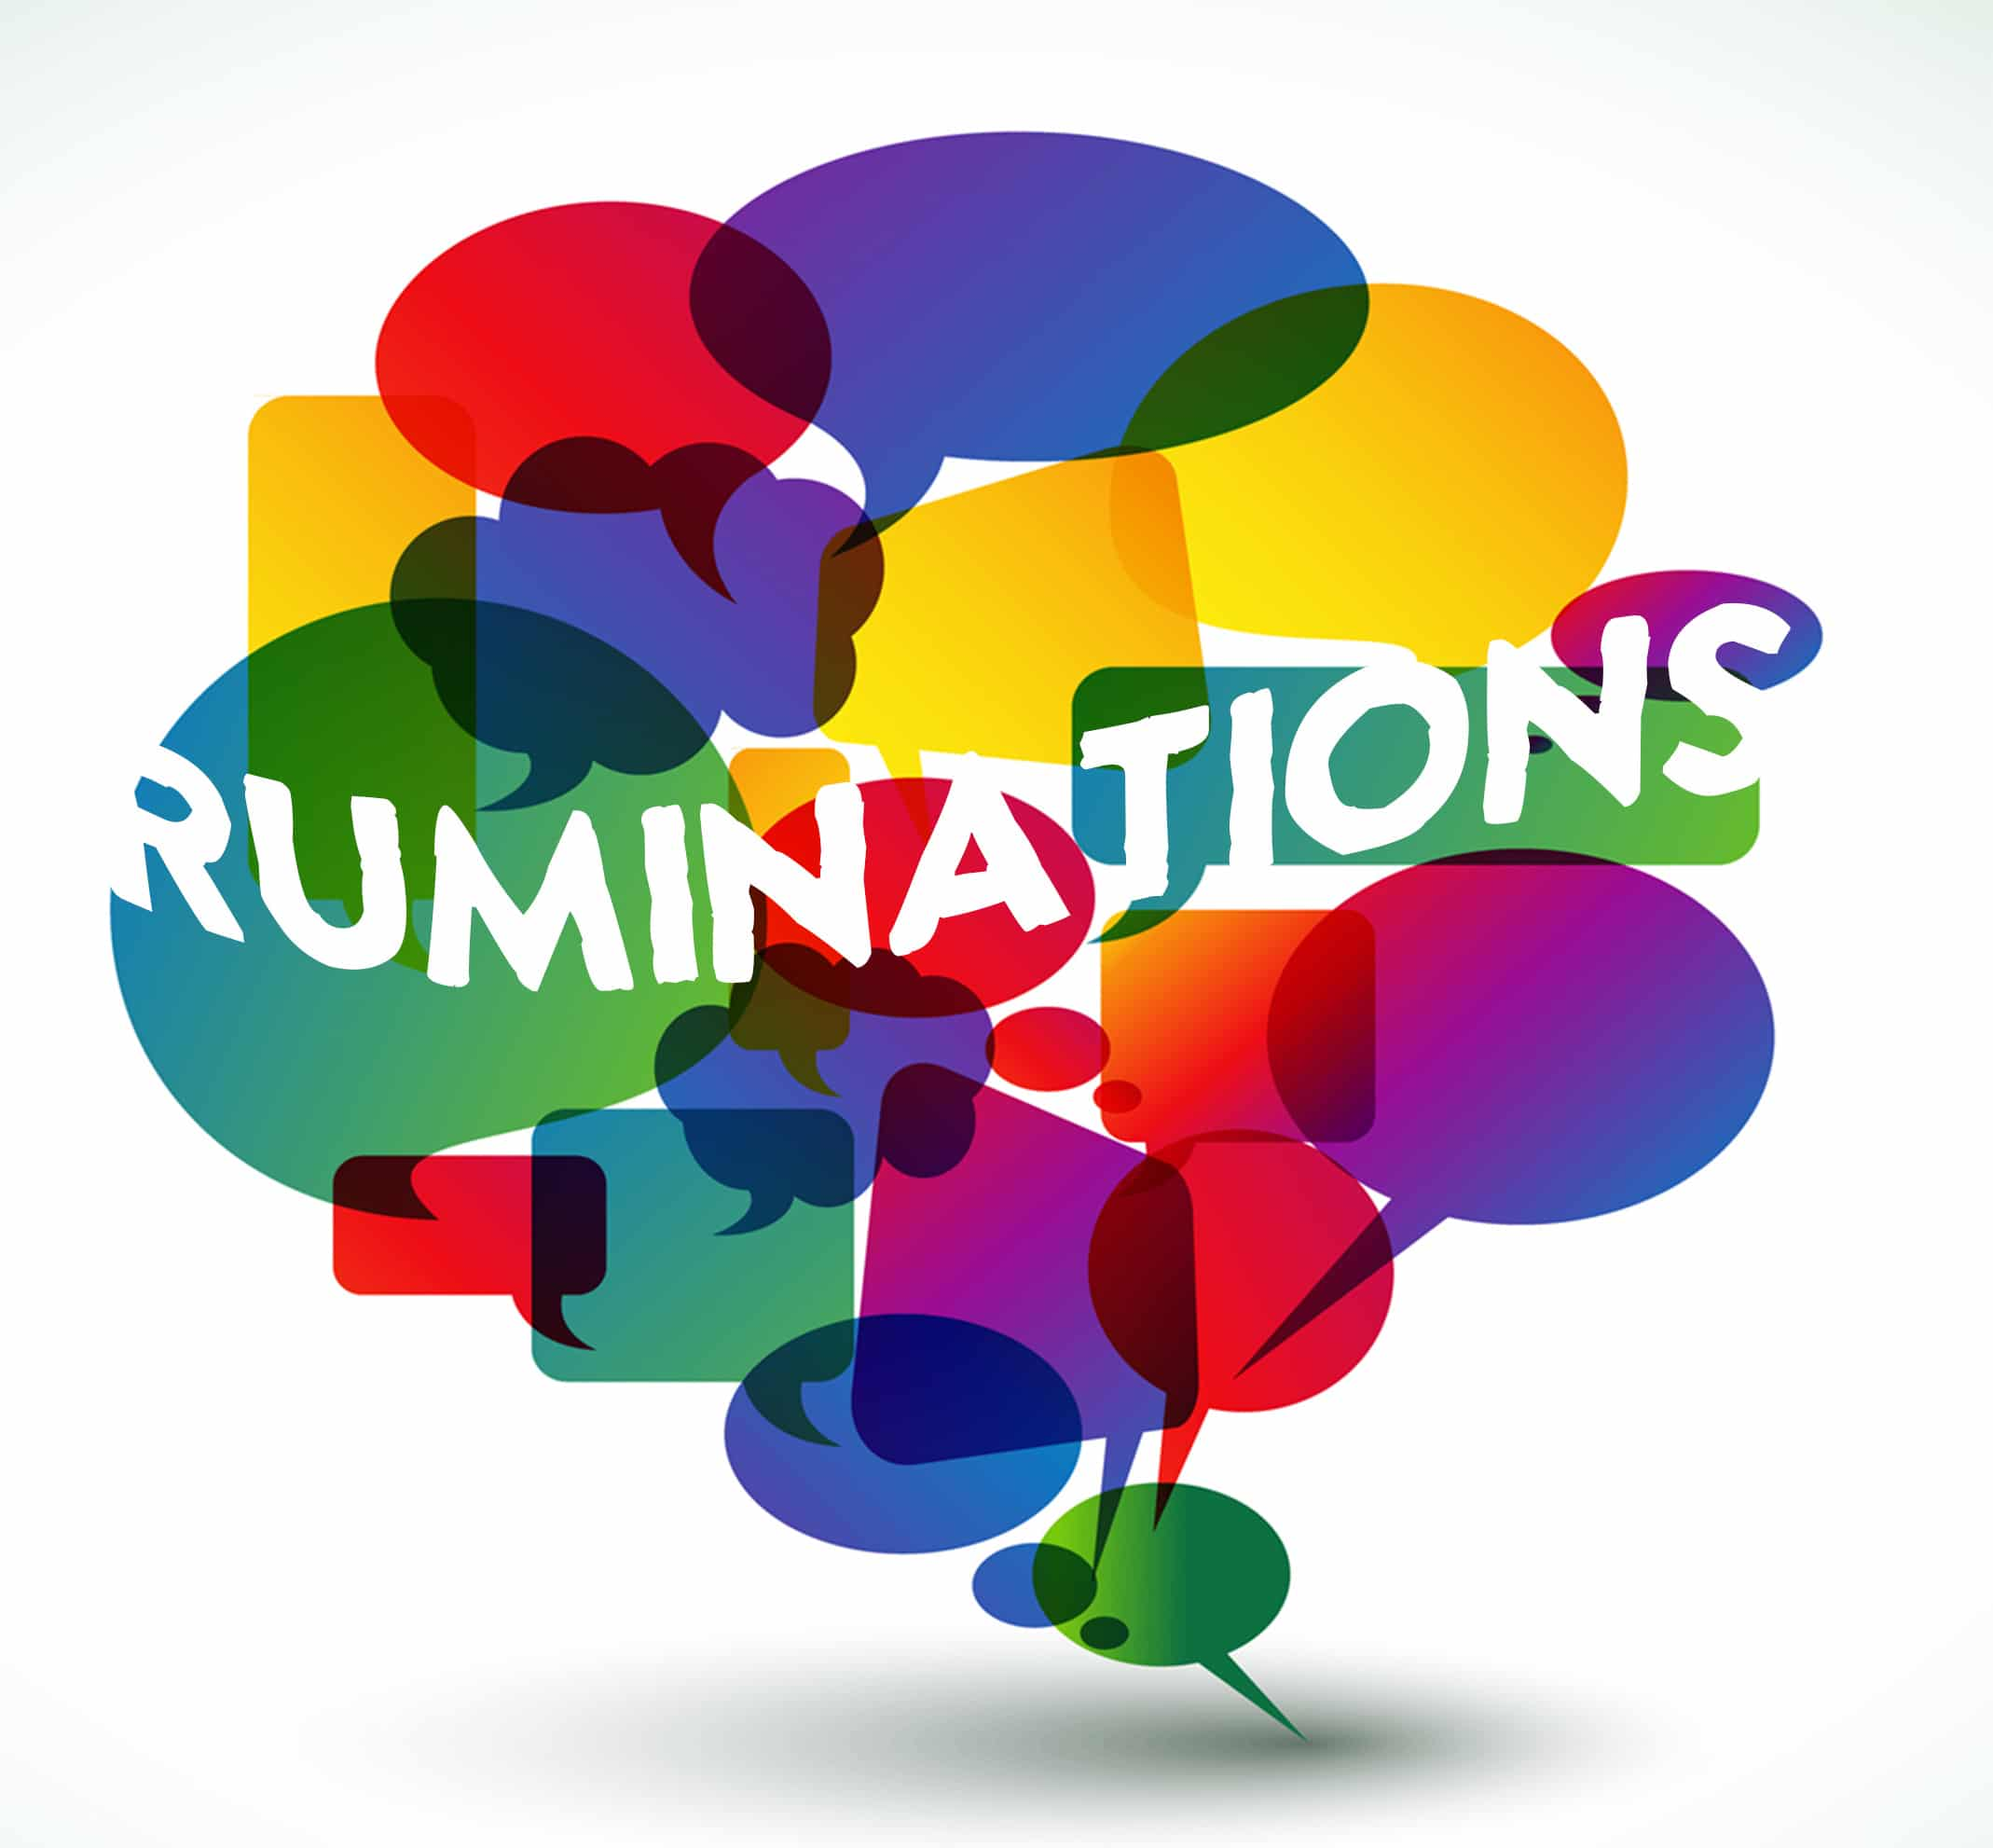 RUMINATIONS - Operation: Celebrate Black History Month...